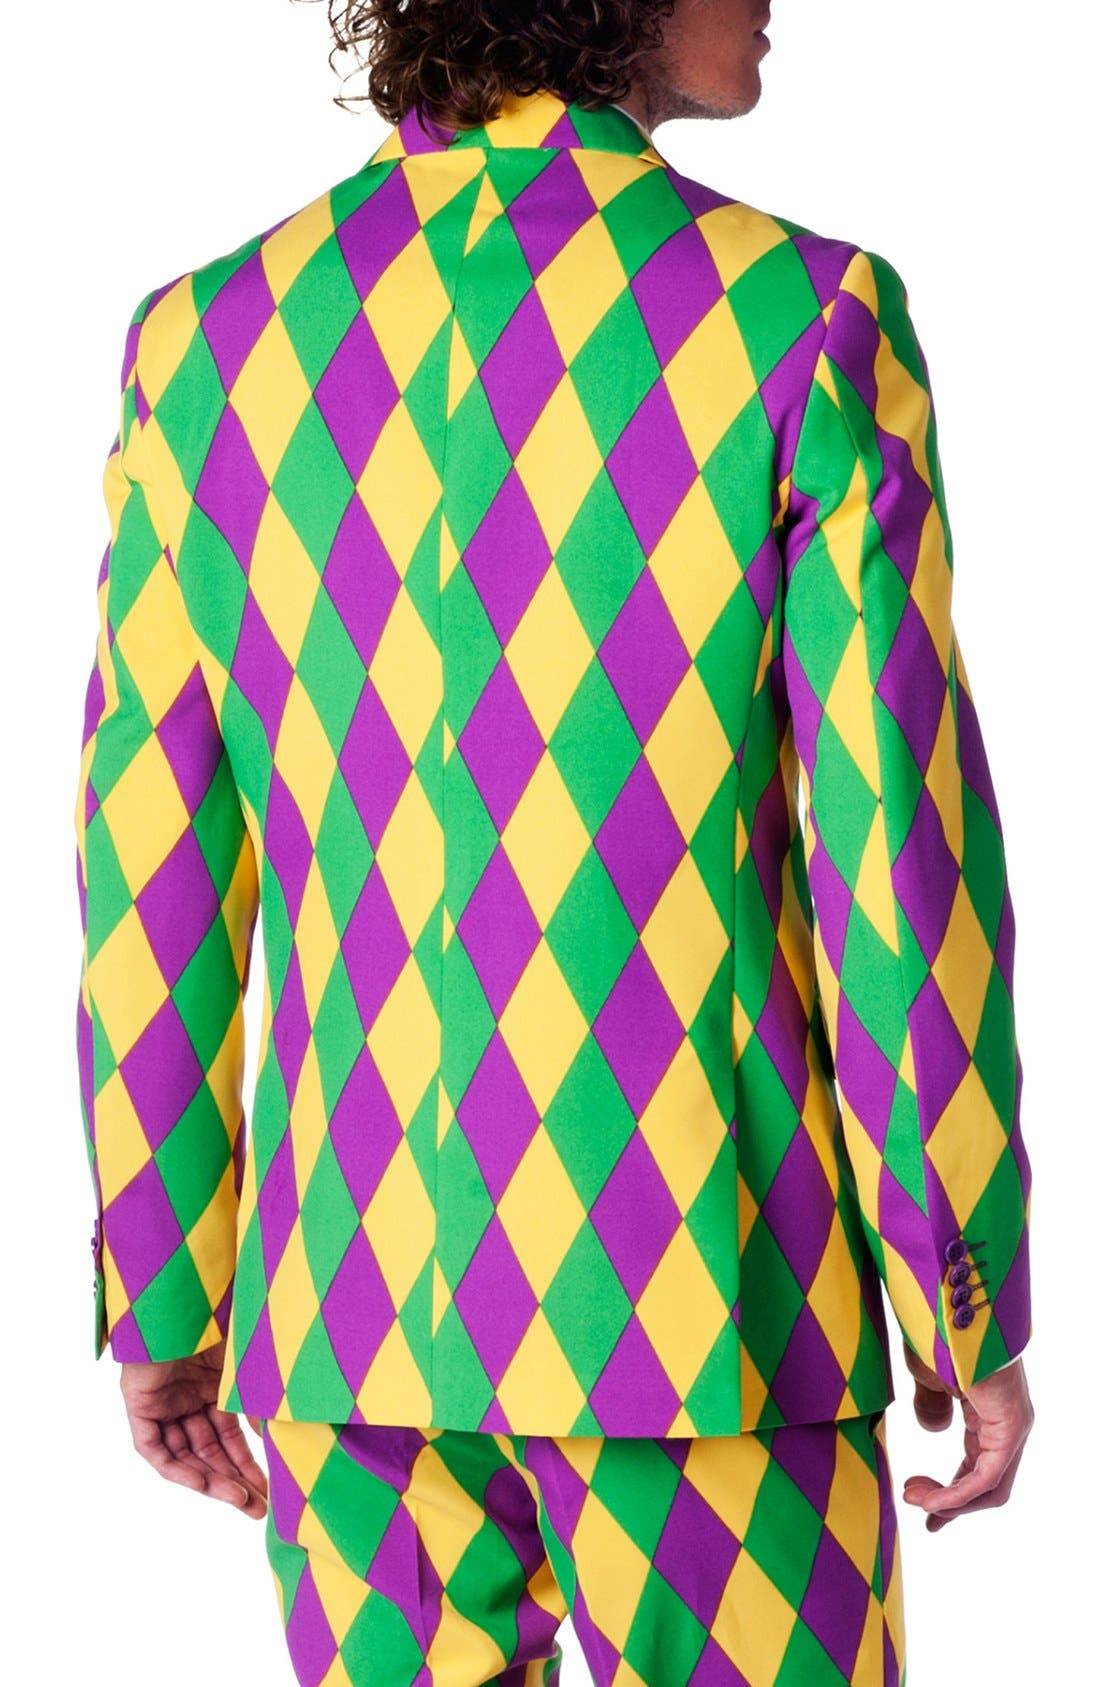 'Harleking' Trim Fit Suit with Tie,                             Alternate thumbnail 2, color,                             Green/ Purple/ Yellow